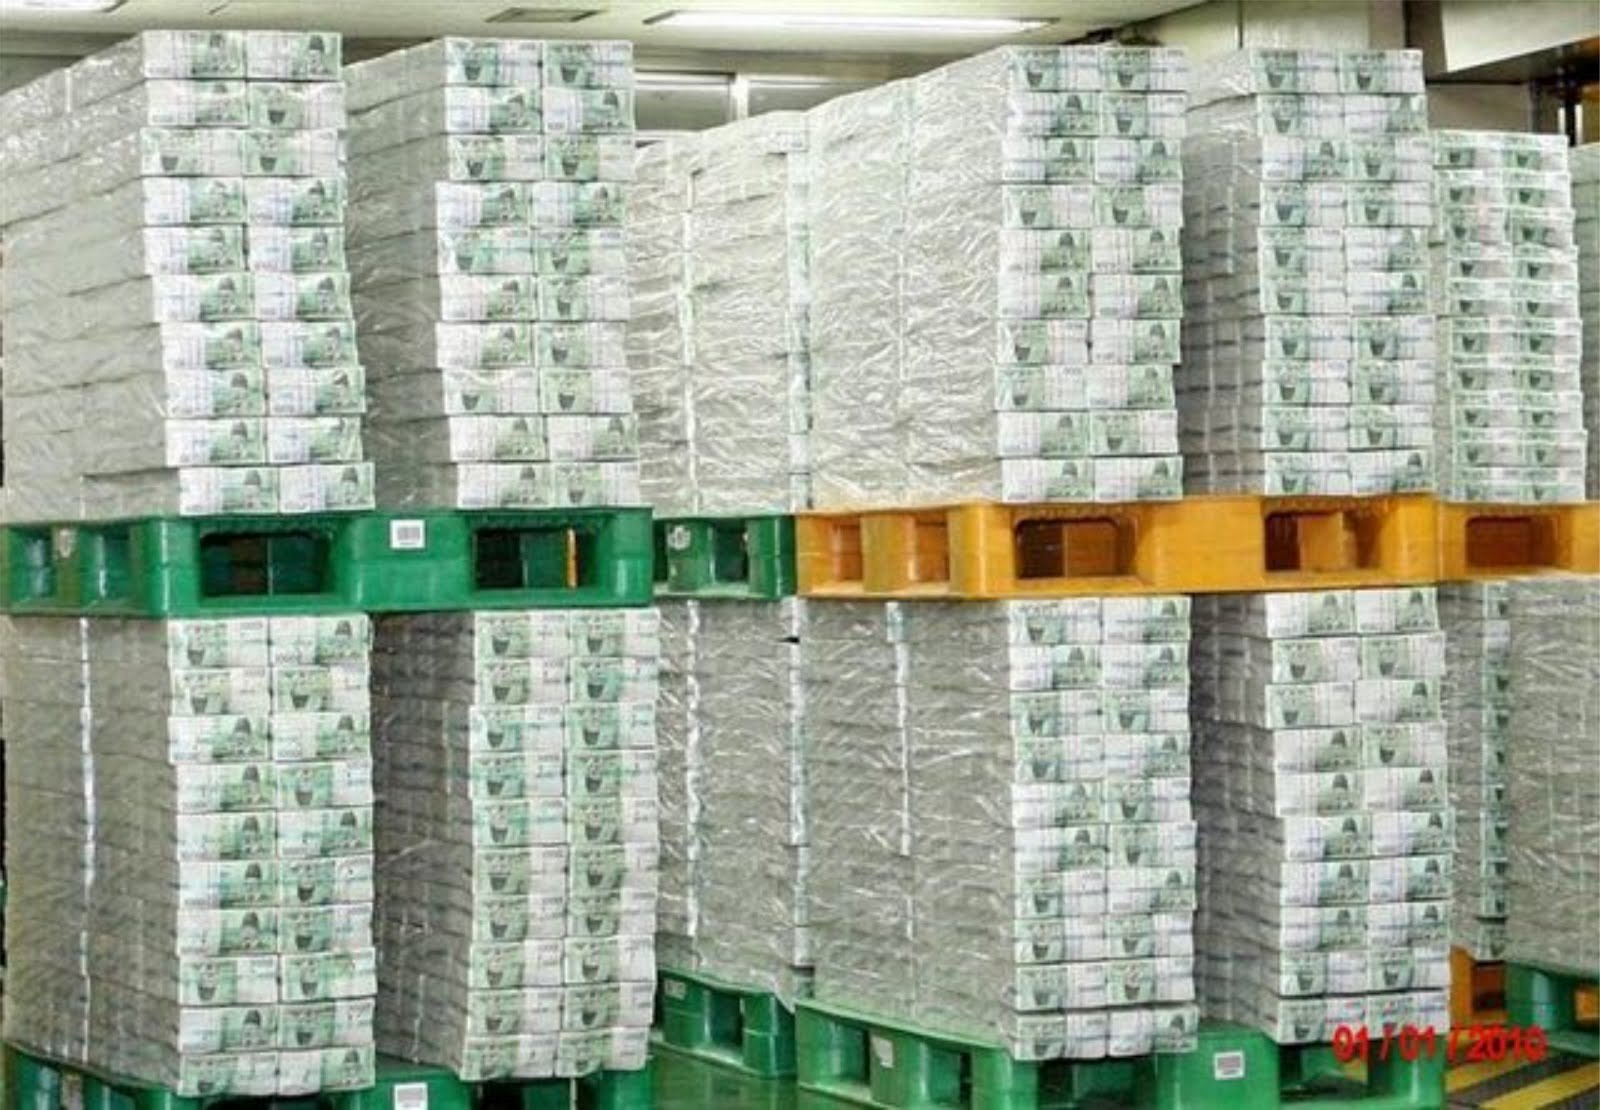 Picture pallets piled with us dollar bills the world global